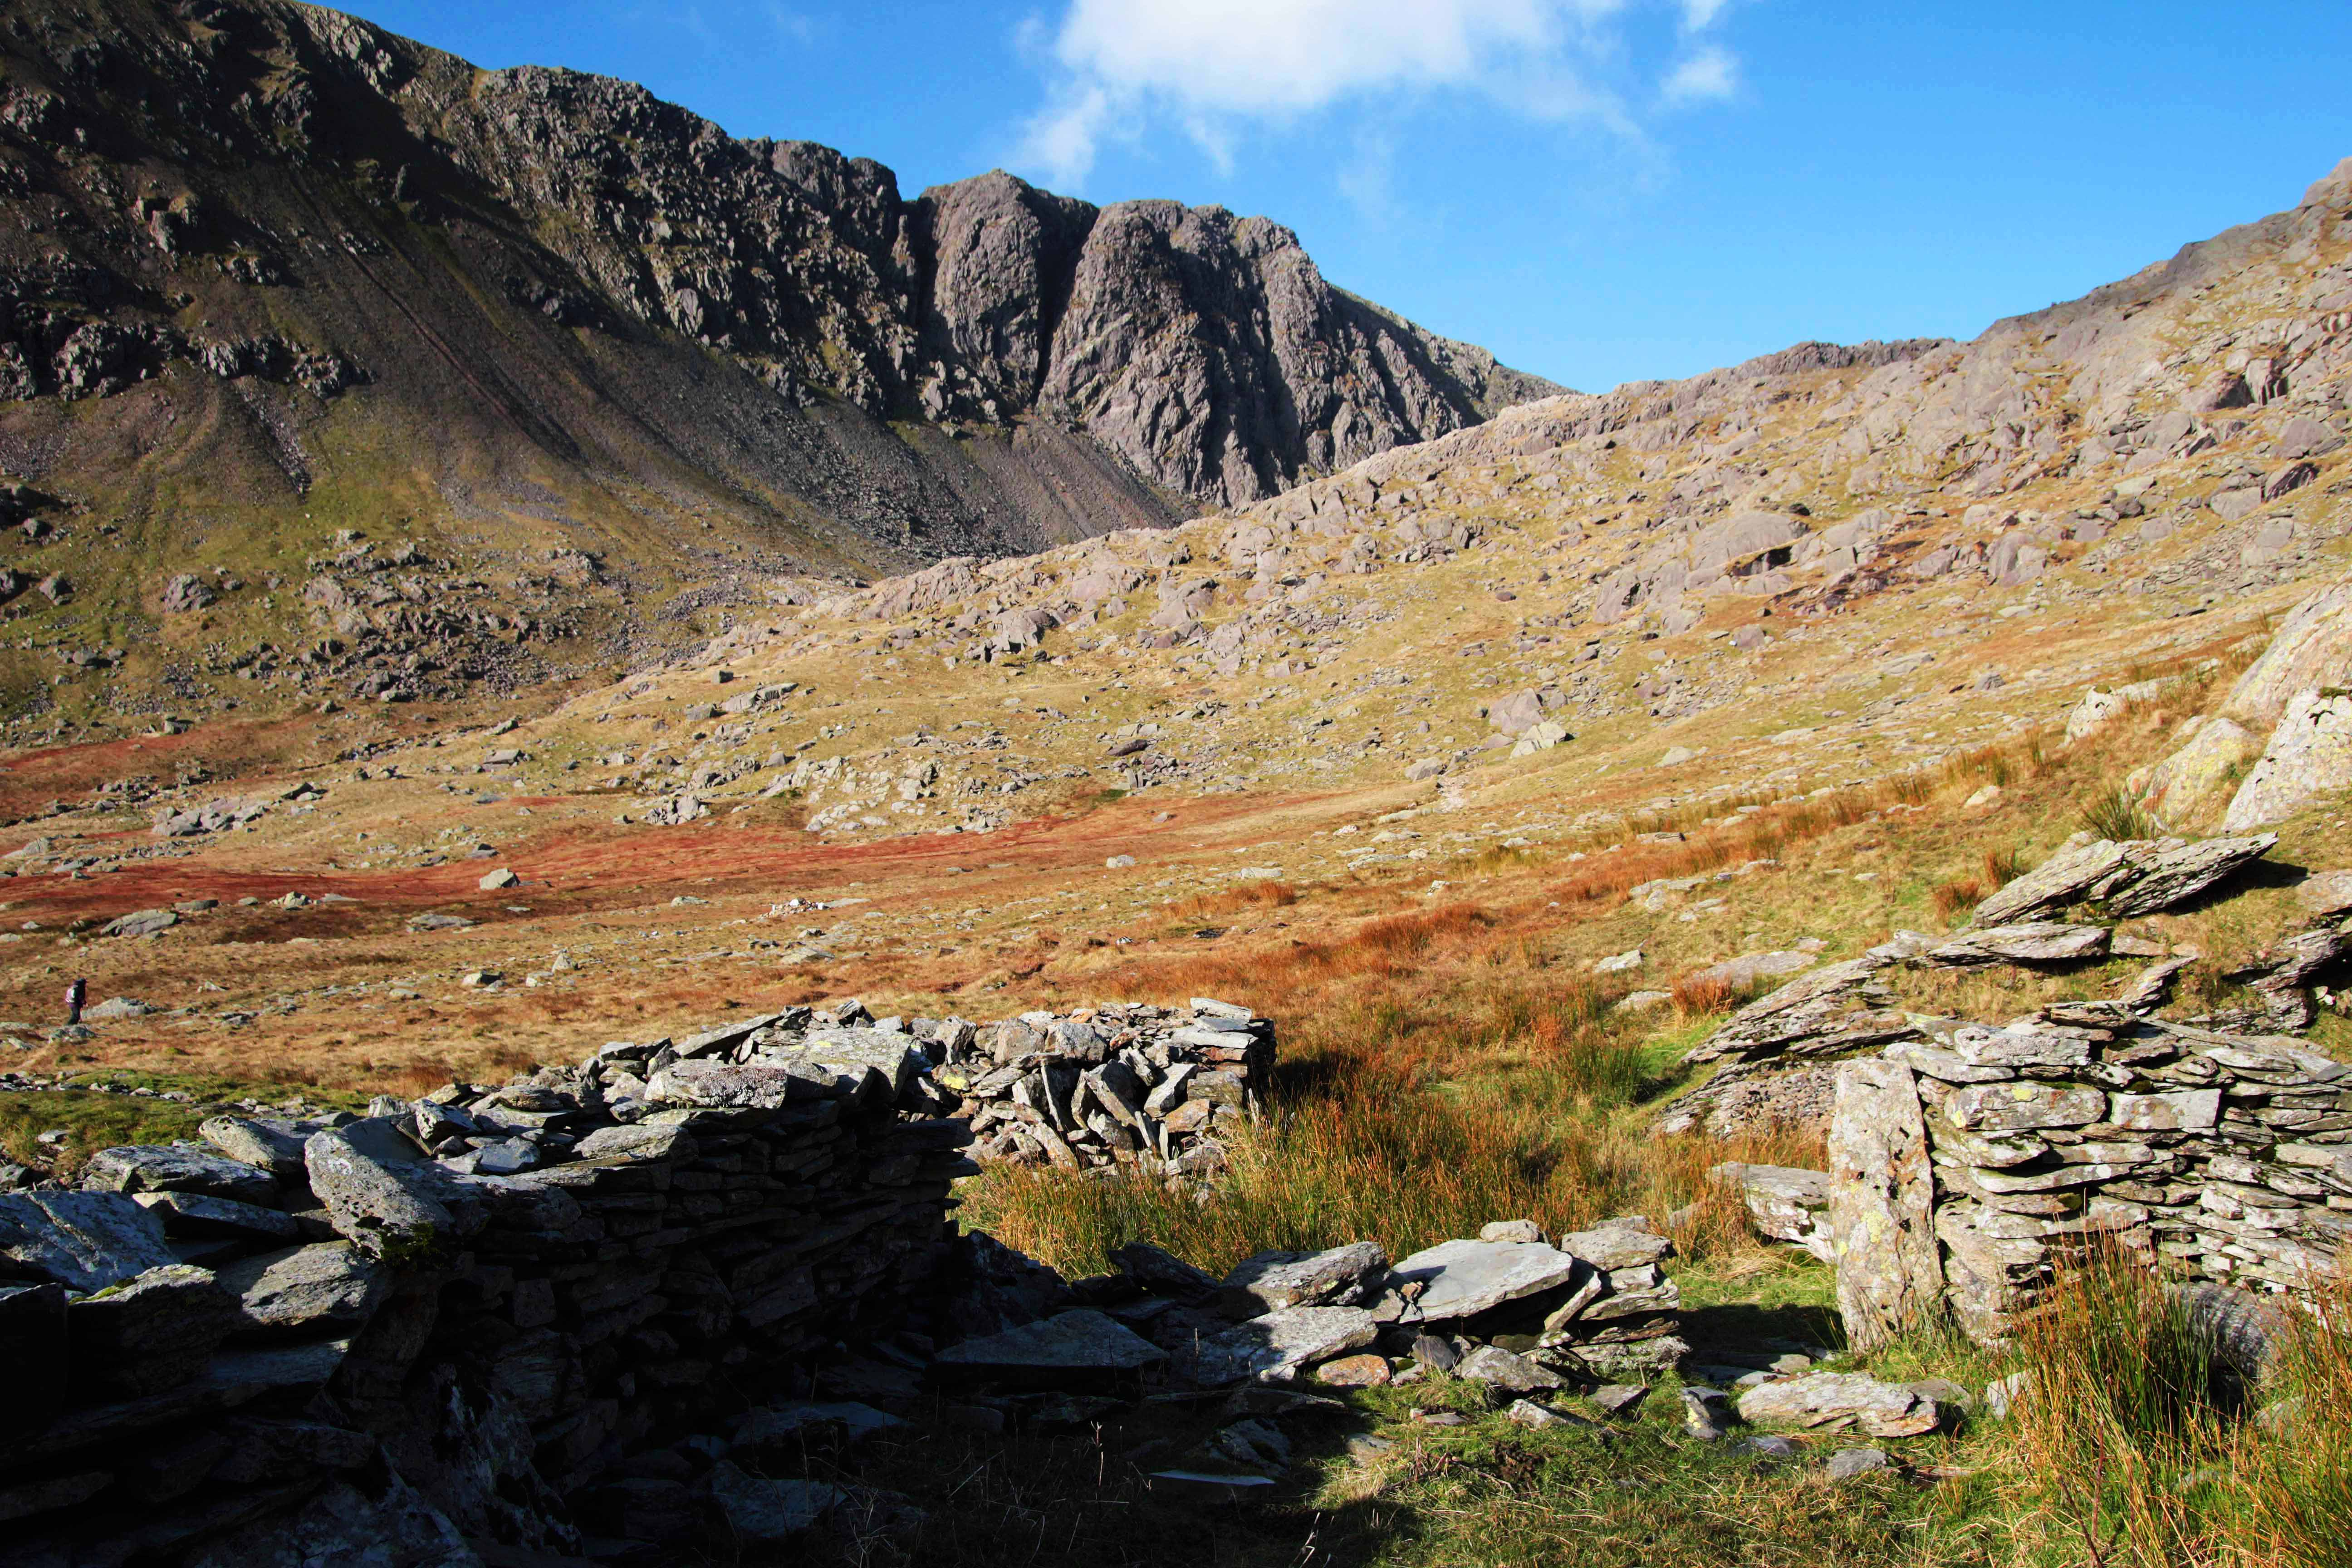 Dow Crag photographed from near Goats Water. The picture was taken during an ascent of Coniston Old Man. A classic mountain walk guided by Mountain Explorer.